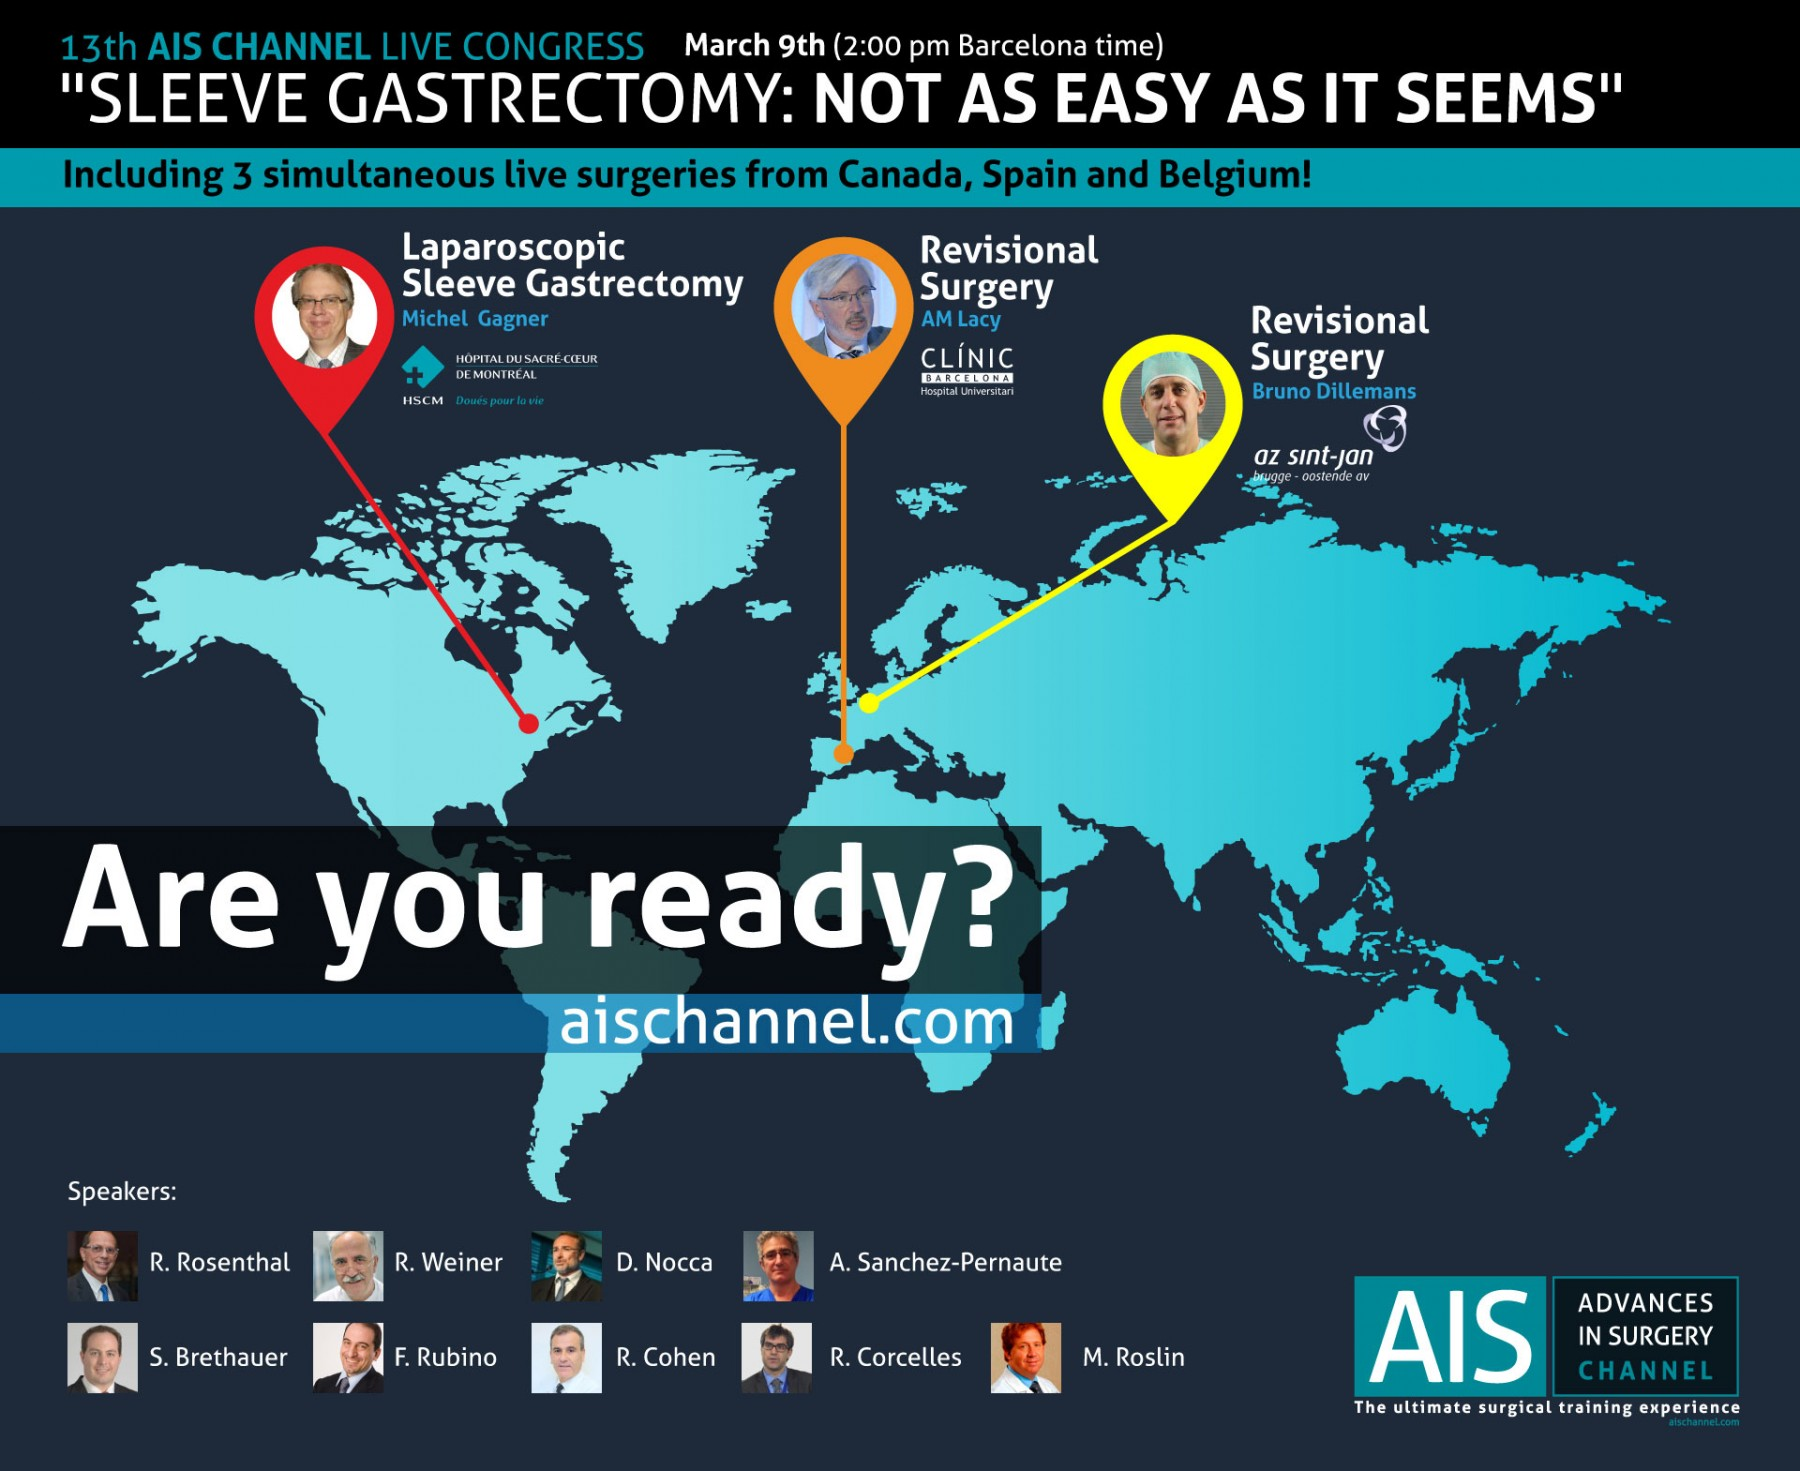 Sleeve Gastrectomy: Not as easy as it seems